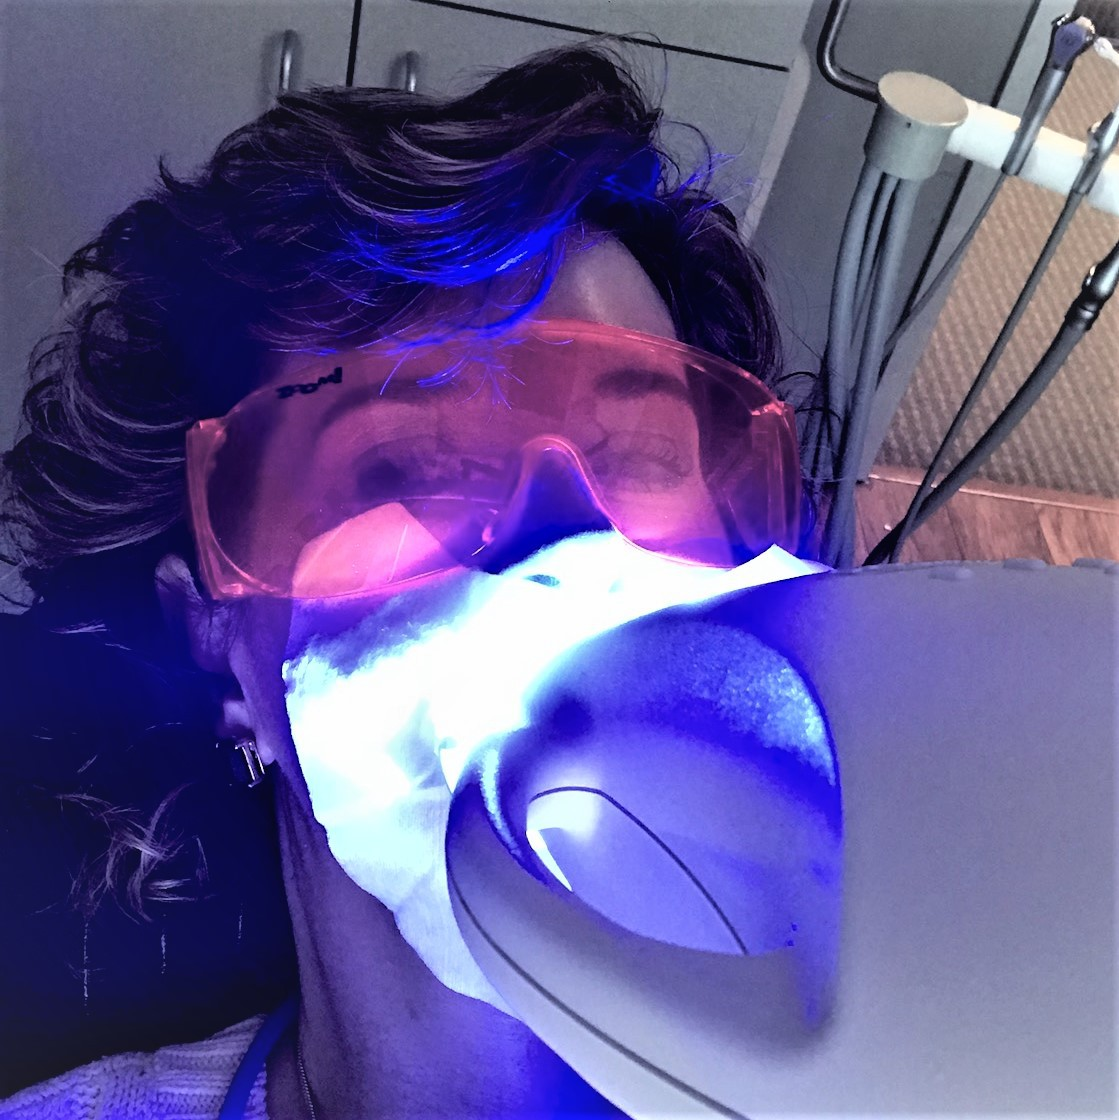 Zoom whitening, teeth whitening, white teeth, whiter teeth, how to get white teeth, how to get whiter teeth, dr brian wong, brian wong, stonbriar dental, zoom, empty nest, empty nester, empty nesters, midlife, anti-aging, anti-aging tips, best anti-aging tips, how to look younger, over50 beauty, beauty tips over 50, over 50 beauty tips